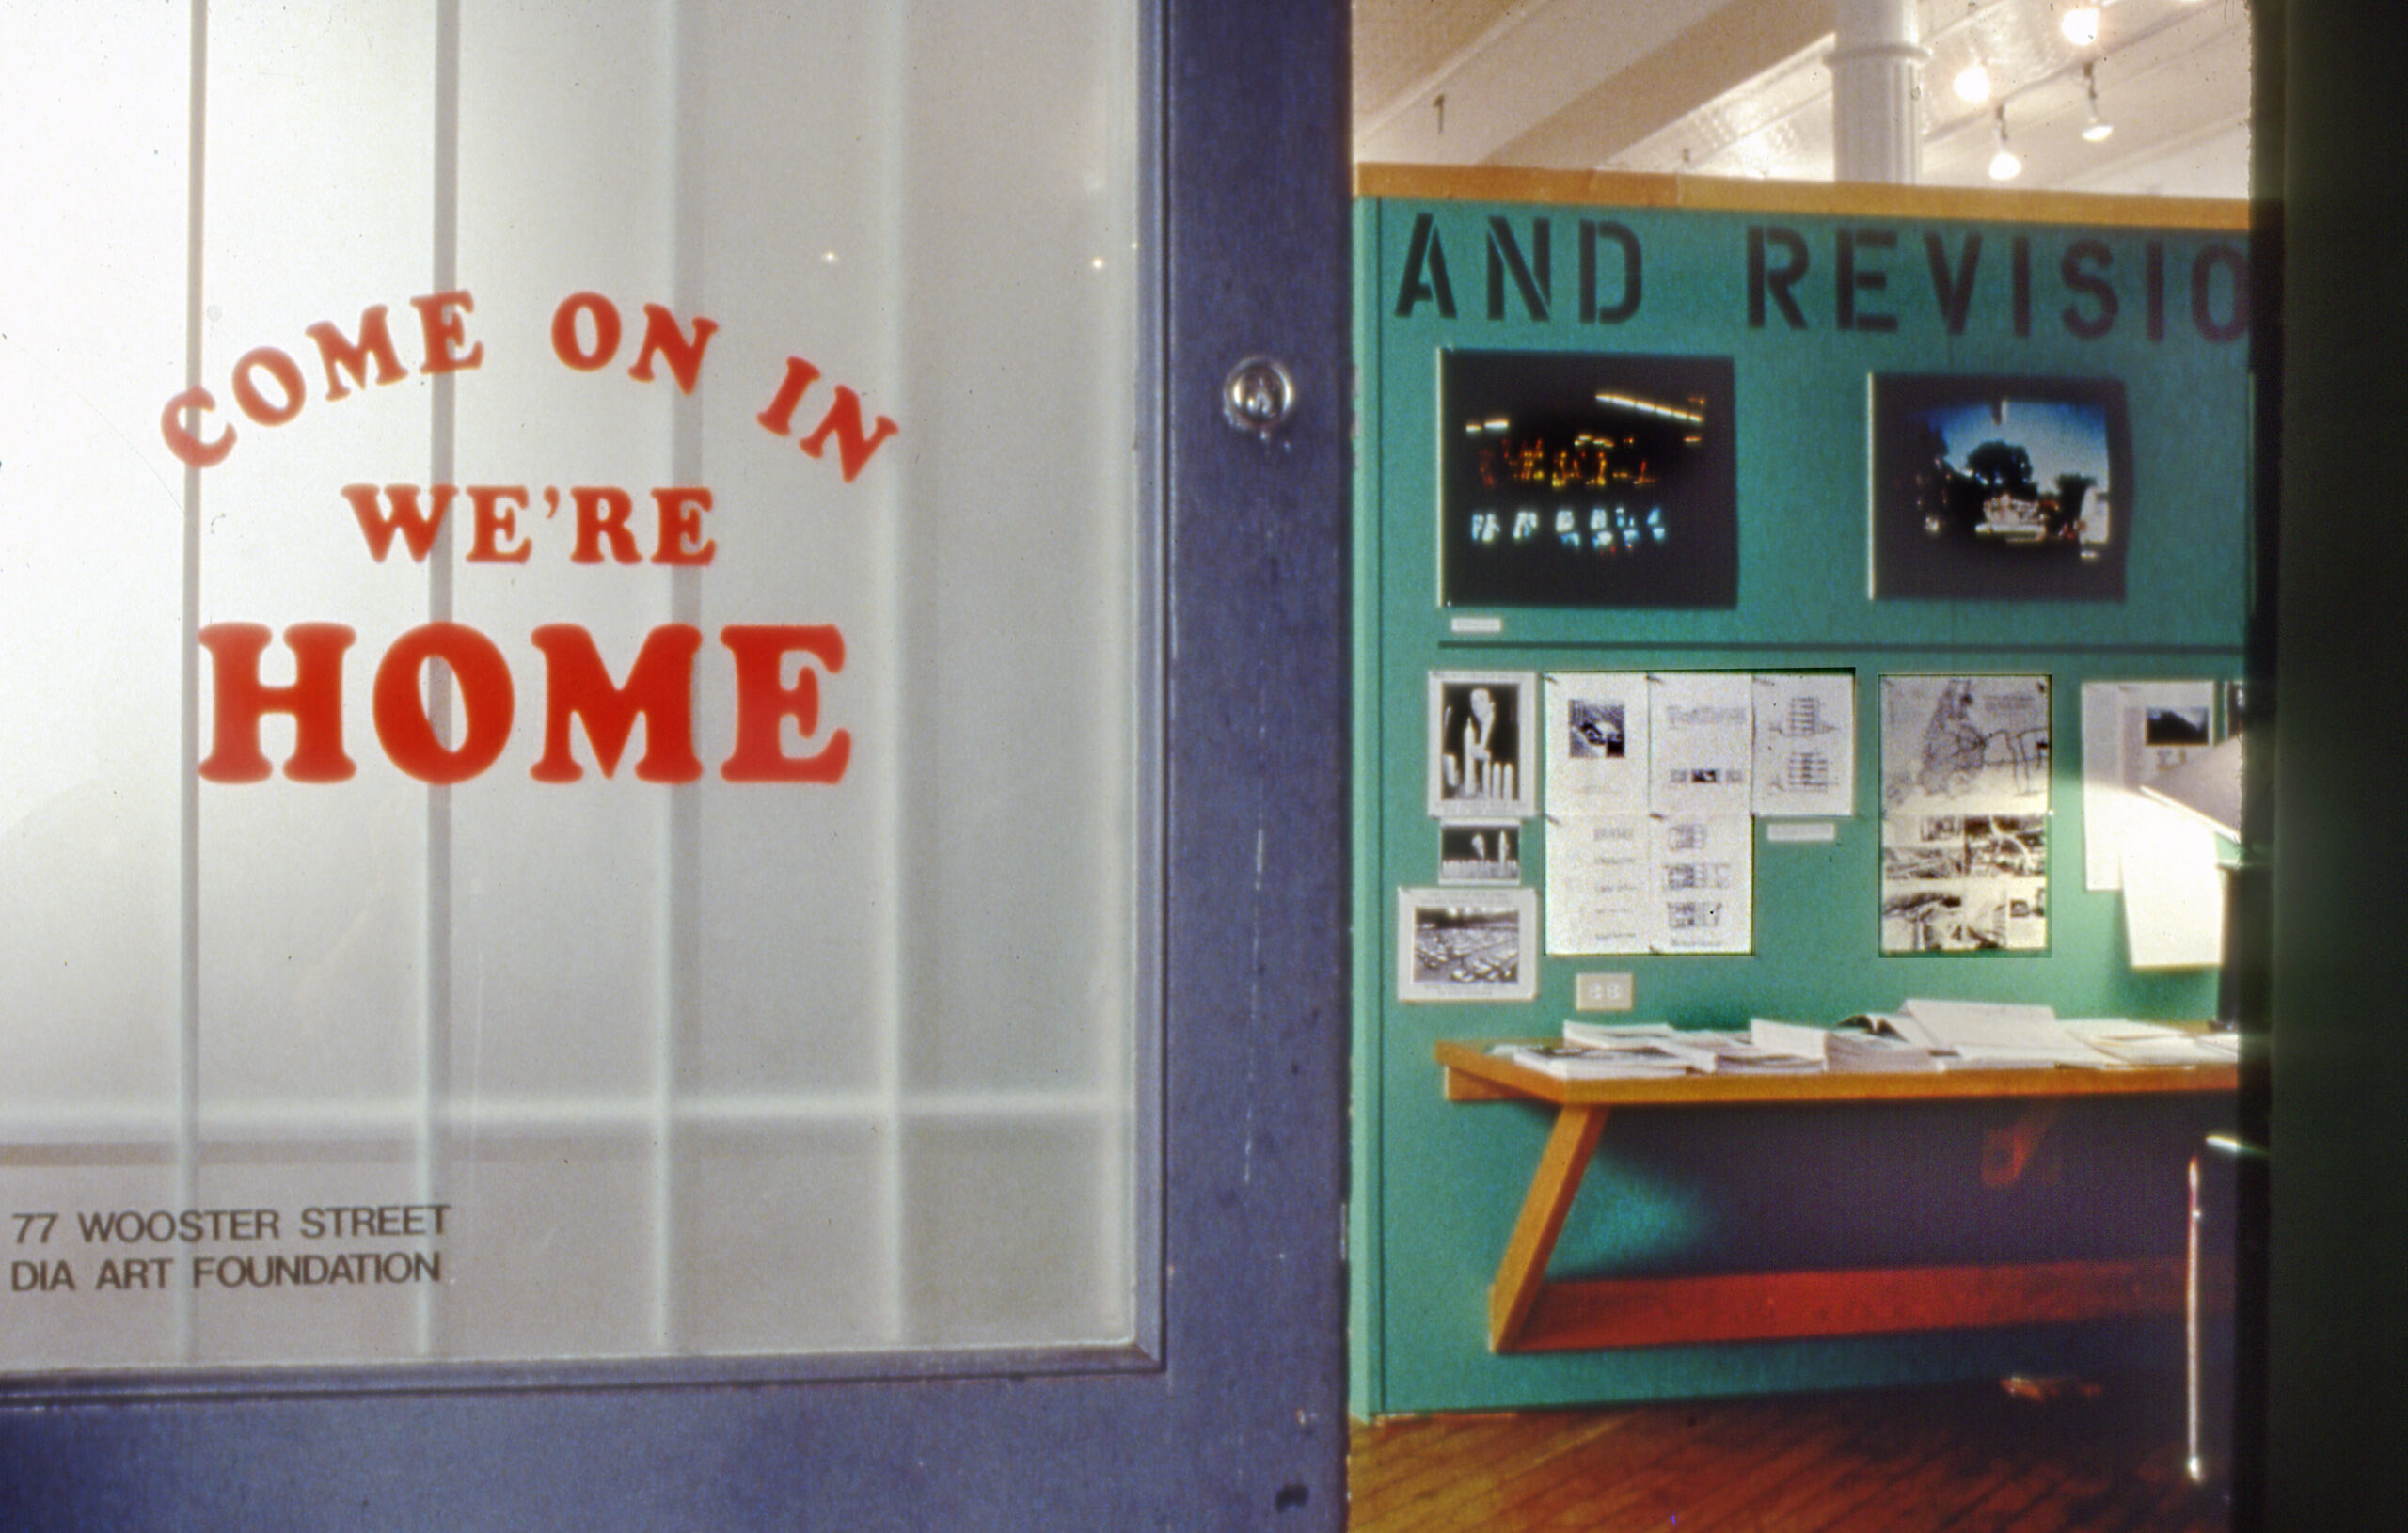 Image caption: Martha Rosler, Entrance view of Home Front, part of the If You Lived Here… (1989) exhibition project at the Dia Art Foundation, New York City.